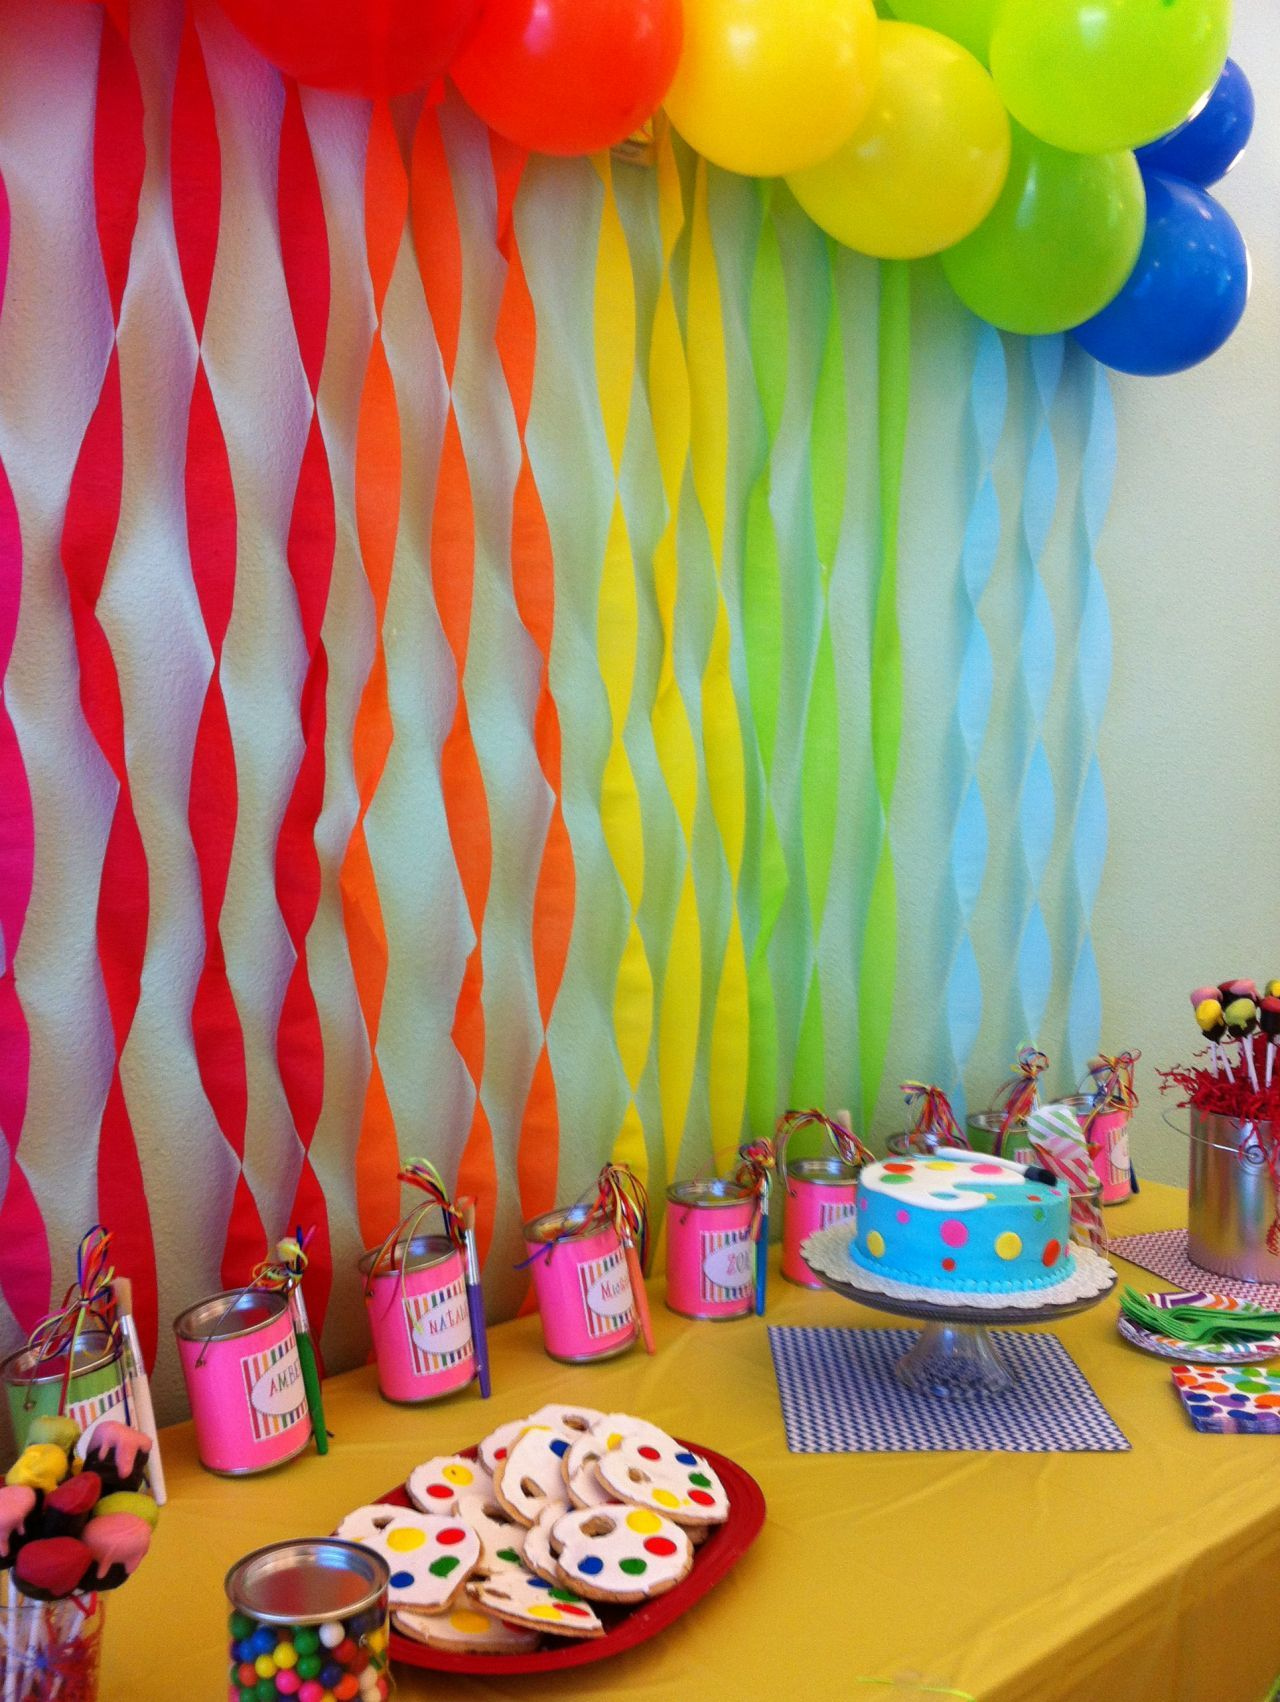 Get These 12 Images Of 4 Year Old Boy Birthday Party Ideas At Home Dastin Decor Ideas In 2020 Art Birthday Party Artist Birthday Party Painting Birthday Party